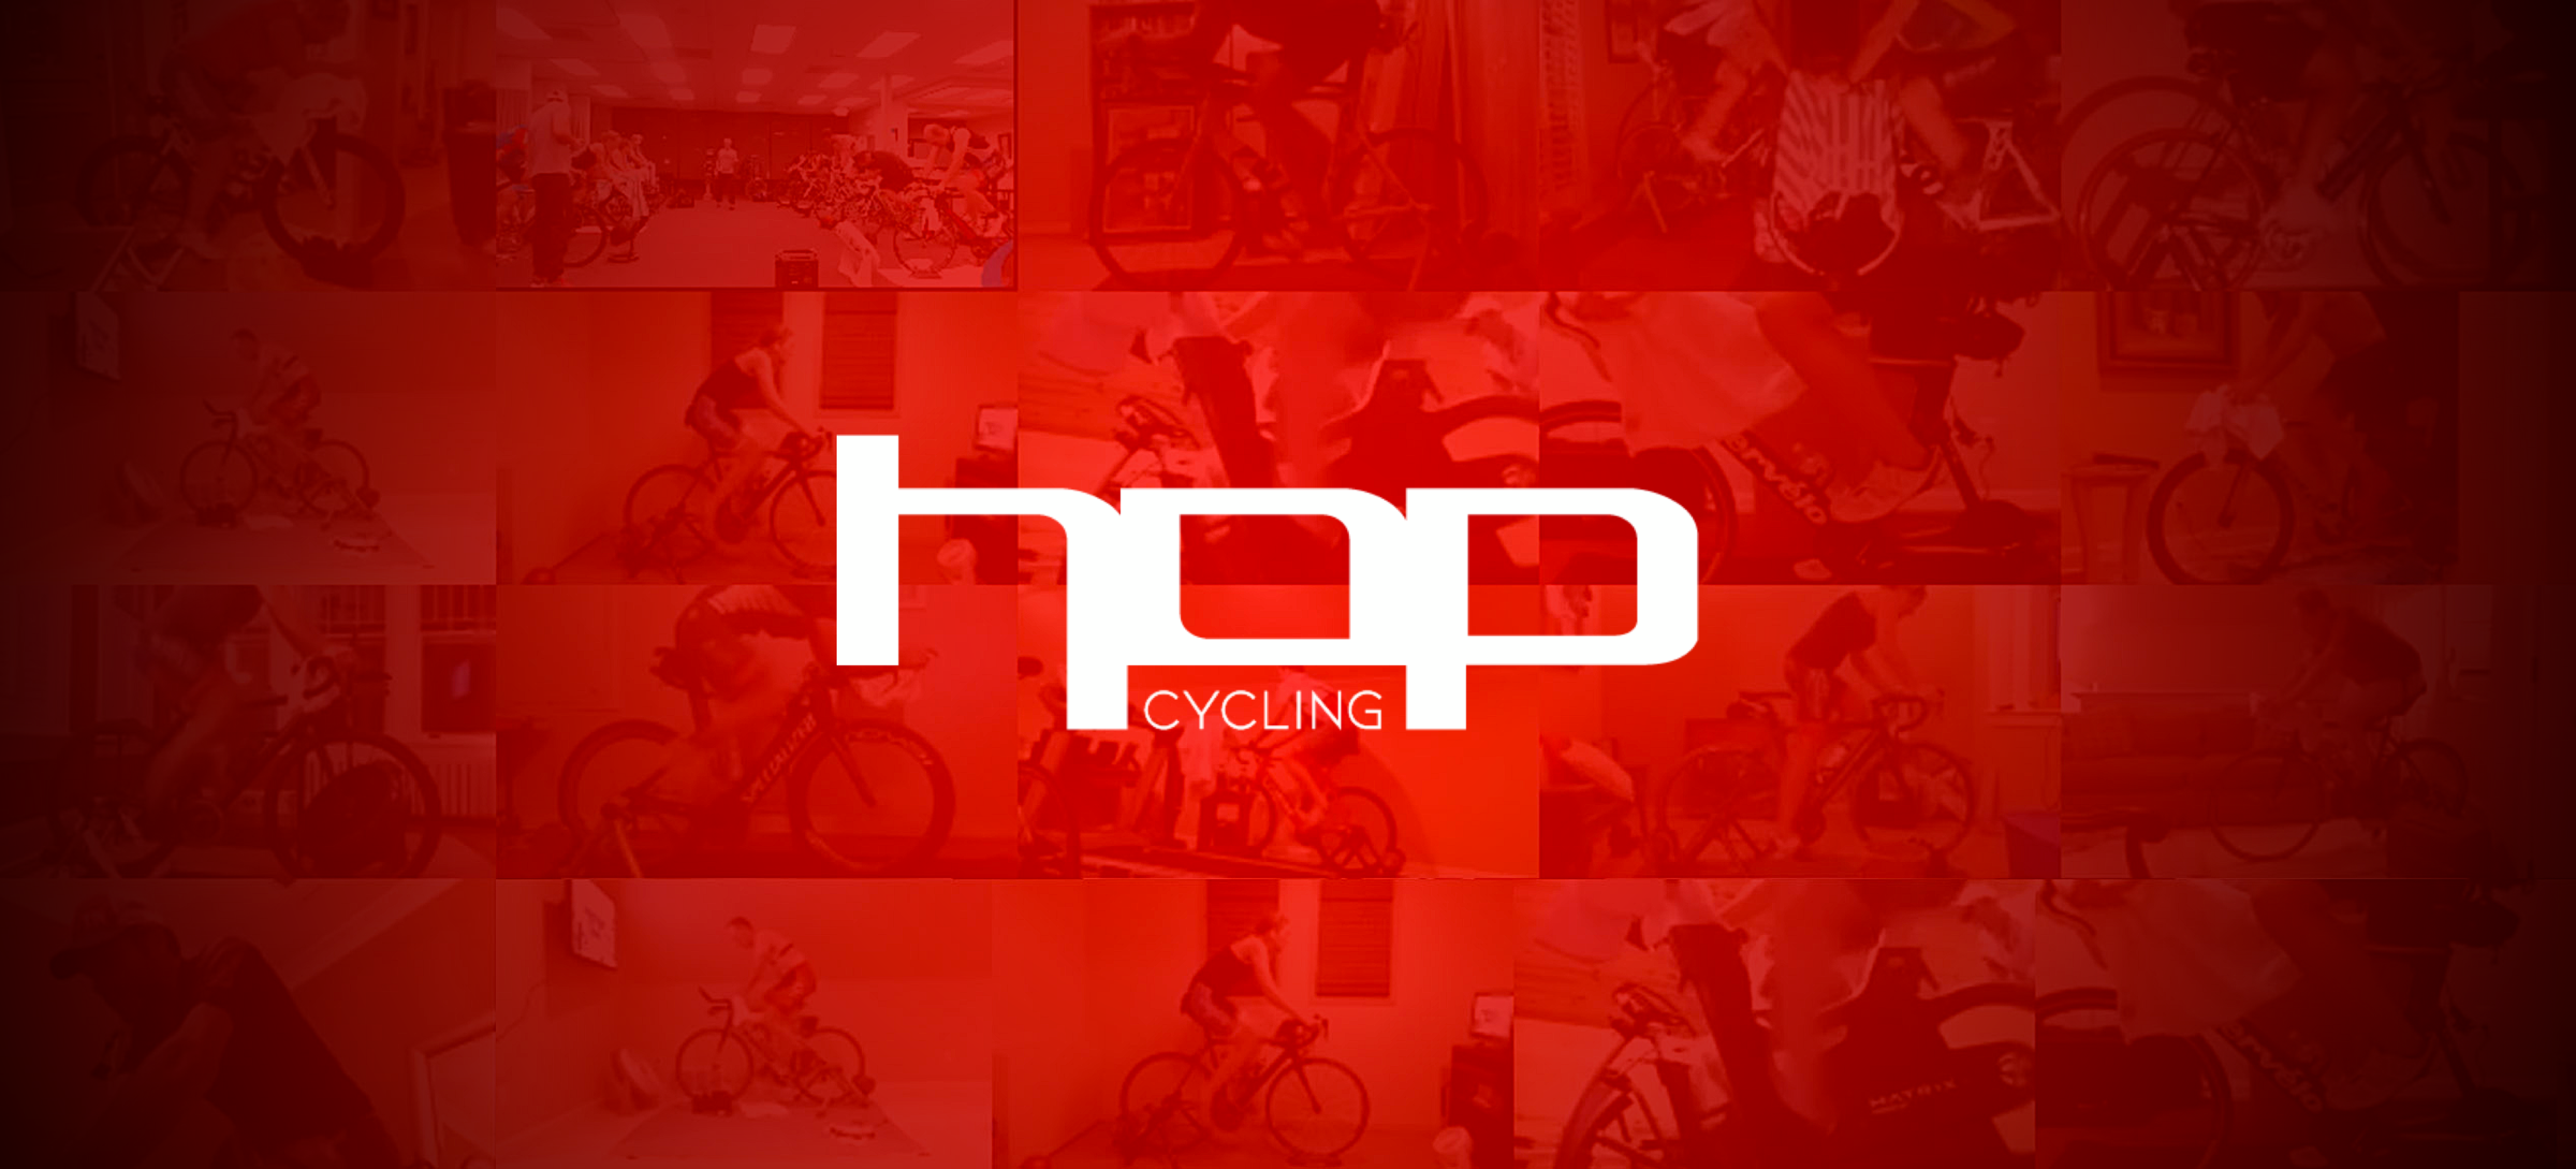 HOP Cycling Registration is Open!